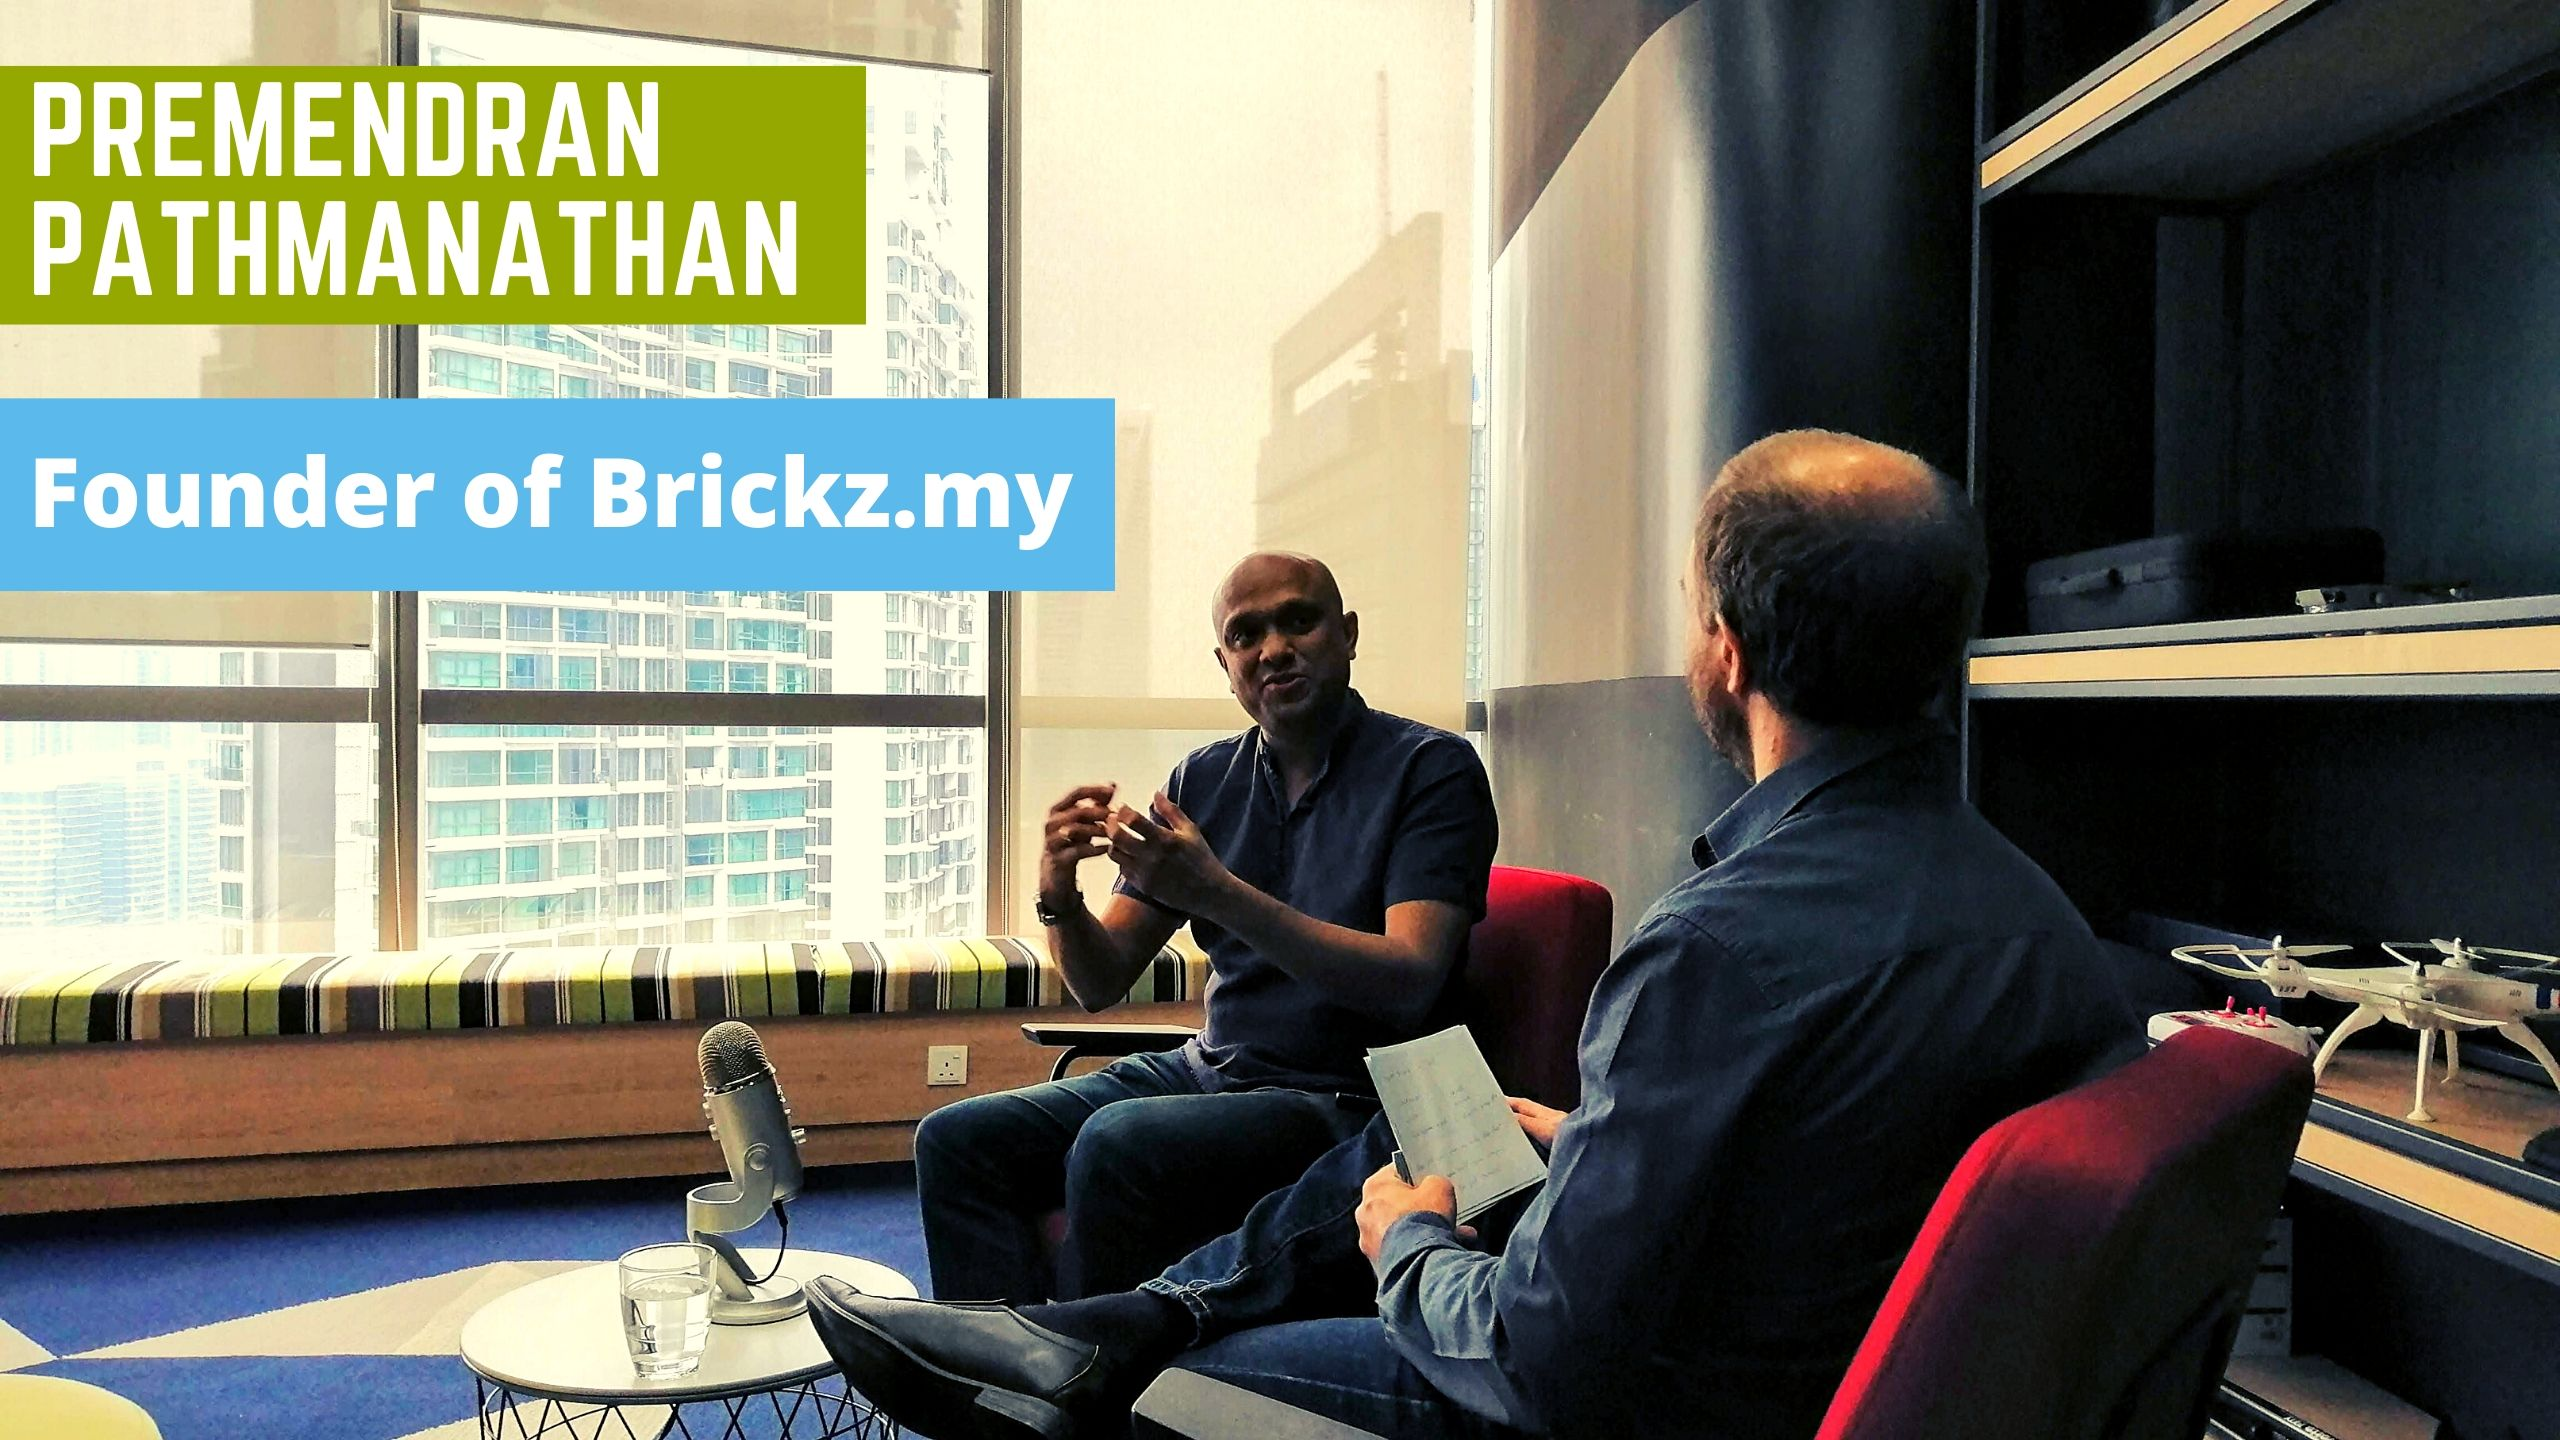 Premendran Pathmanathan founder of Brickz.my – Startups Zone Talk #25